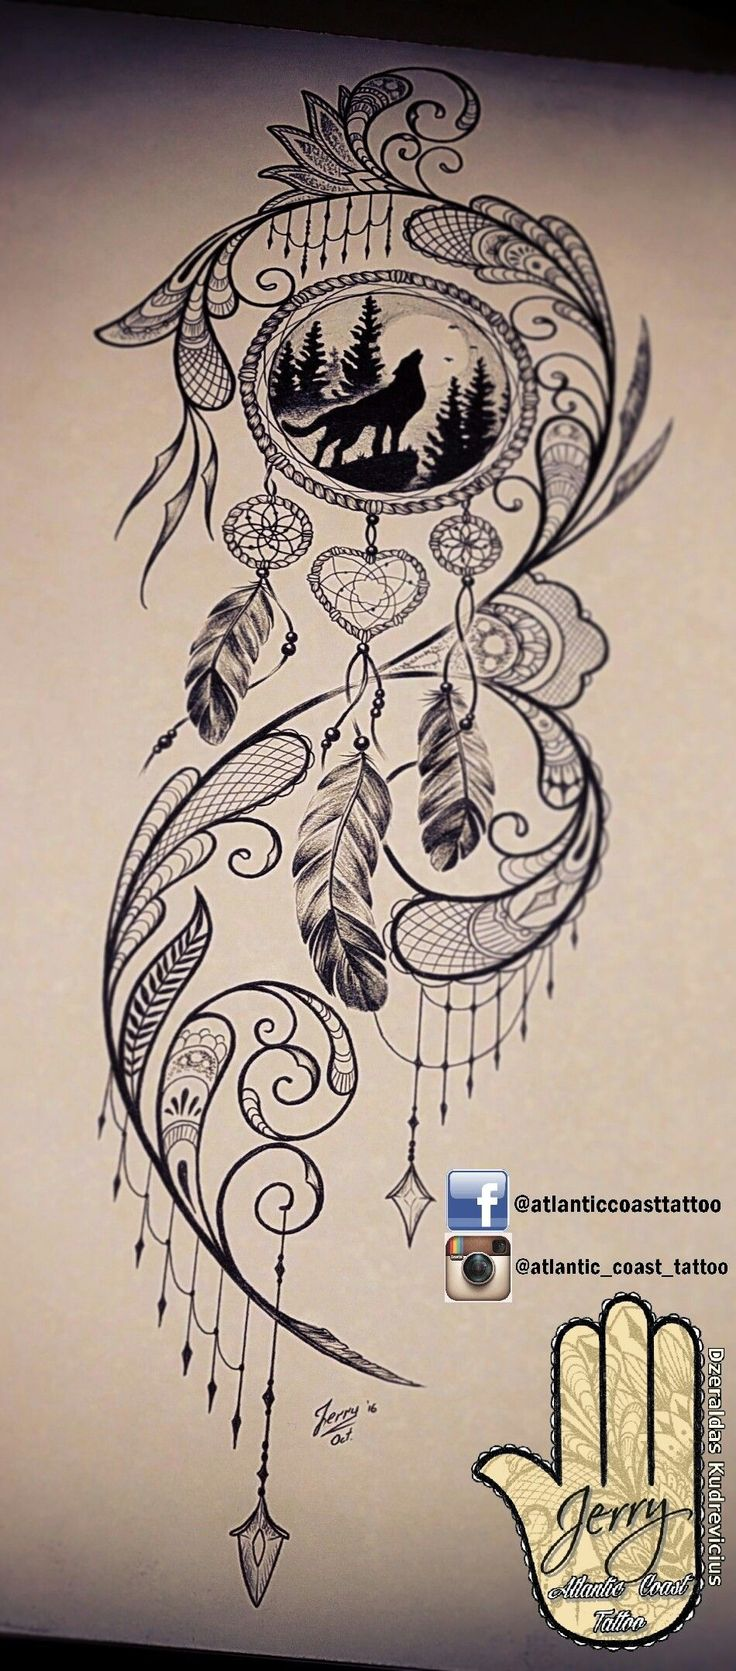 Beautiful tattoo idea design for a thigh, dream catcher tattoo, wolf tattoo ideas. By dzeraldas jerry kudrevicius from Atlantic Coast tattoo. Pretty detail mandala style, lace tattoo design #WolfTattooIdeas